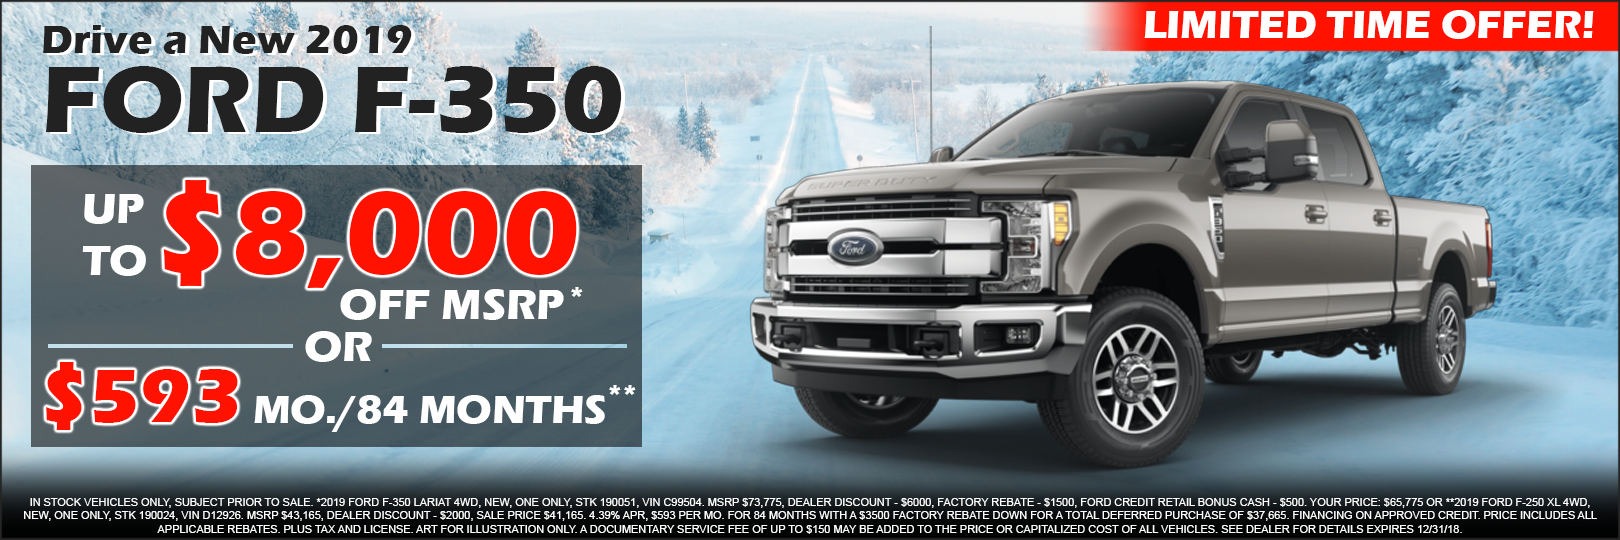 2019 ford f 350 special